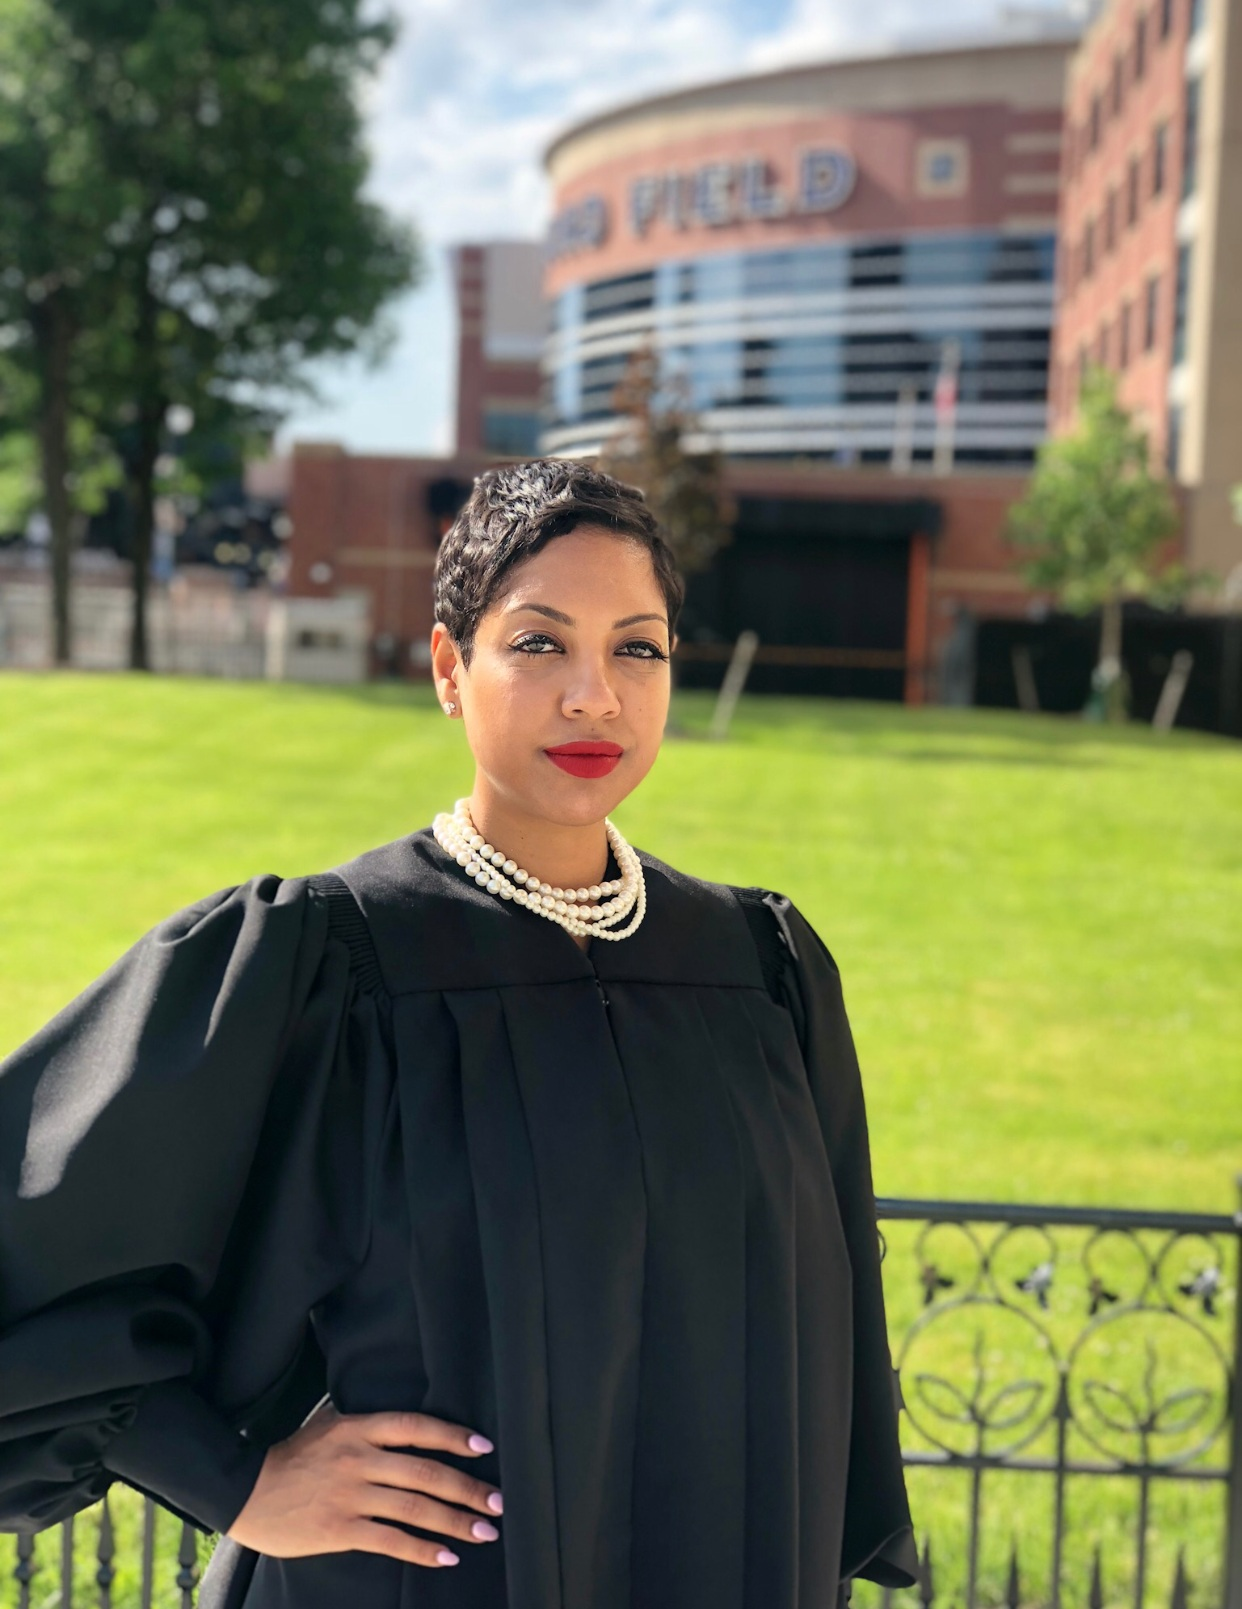 Honorable Judge Aliyah Sabree of the 36th District Court